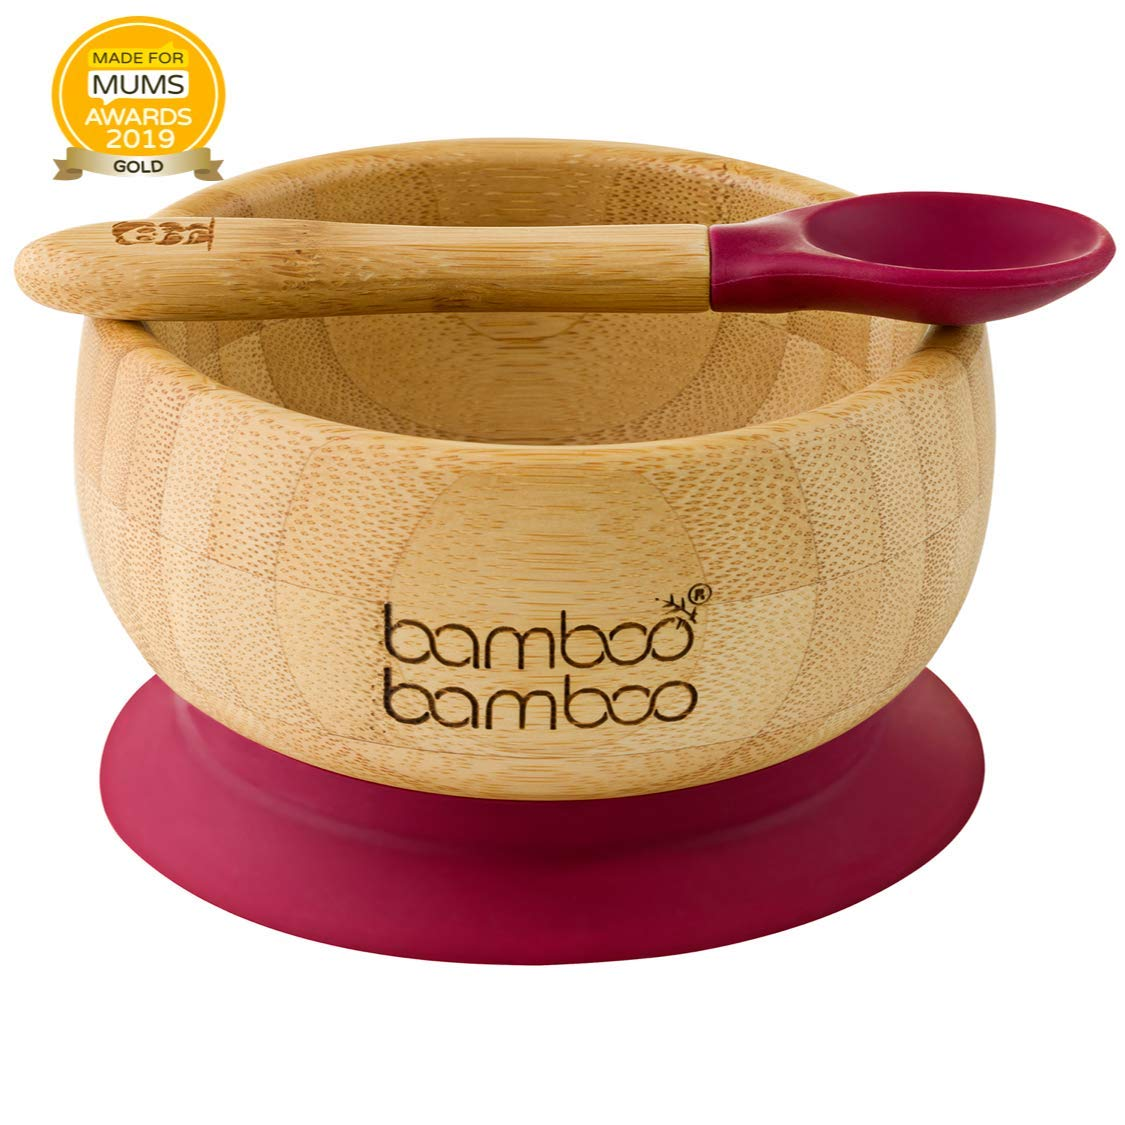 Baby Suction Bowl and Matching Spoon Set, Suction Stay Put Feeding Bowl, Natural Bamboo (Cherry) by bamboo bamboo